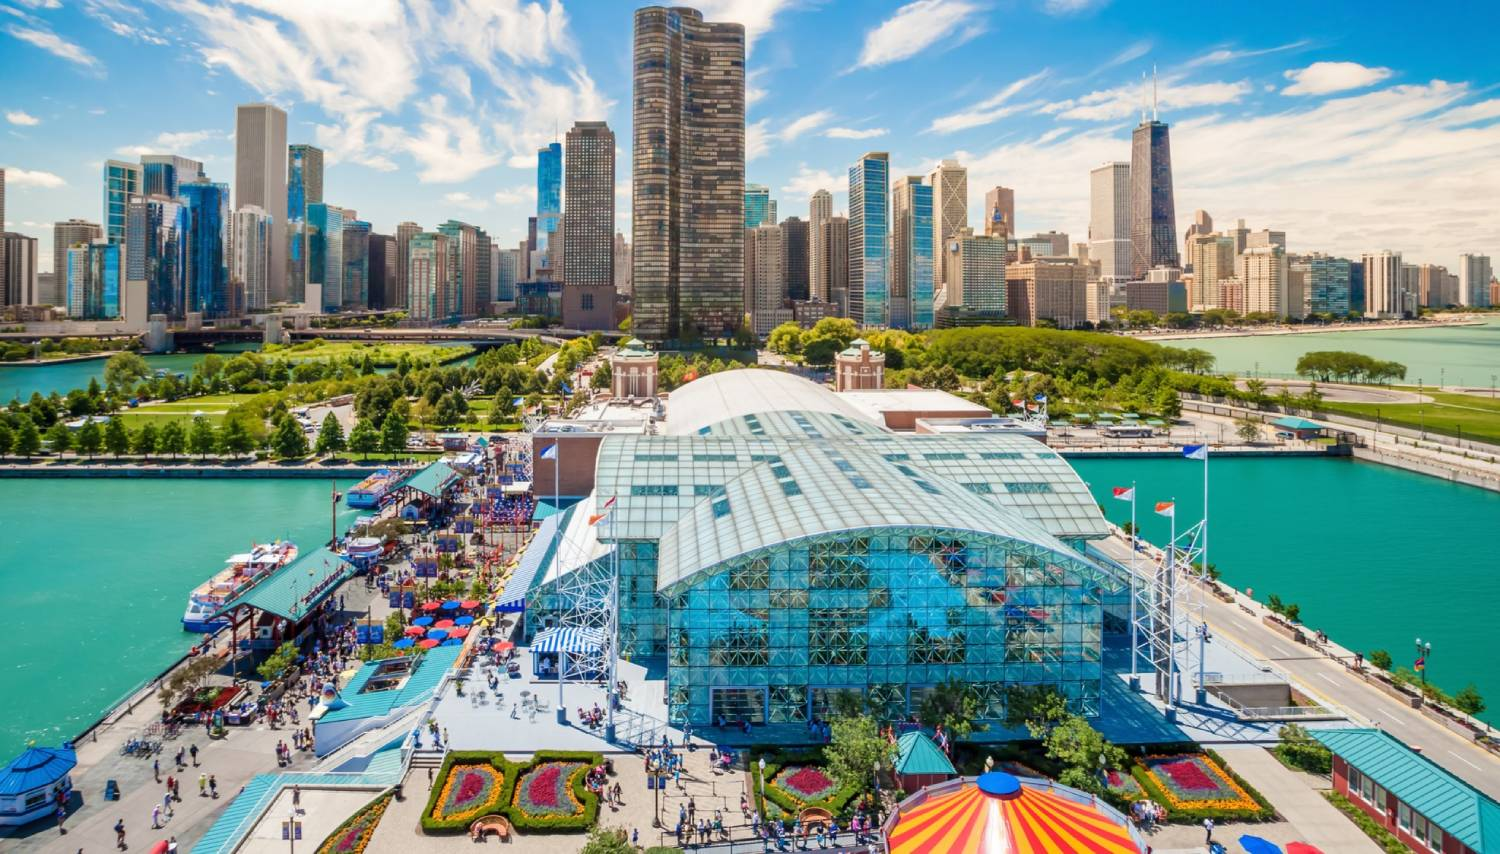 Navy Pier - Things To Do In Chicago